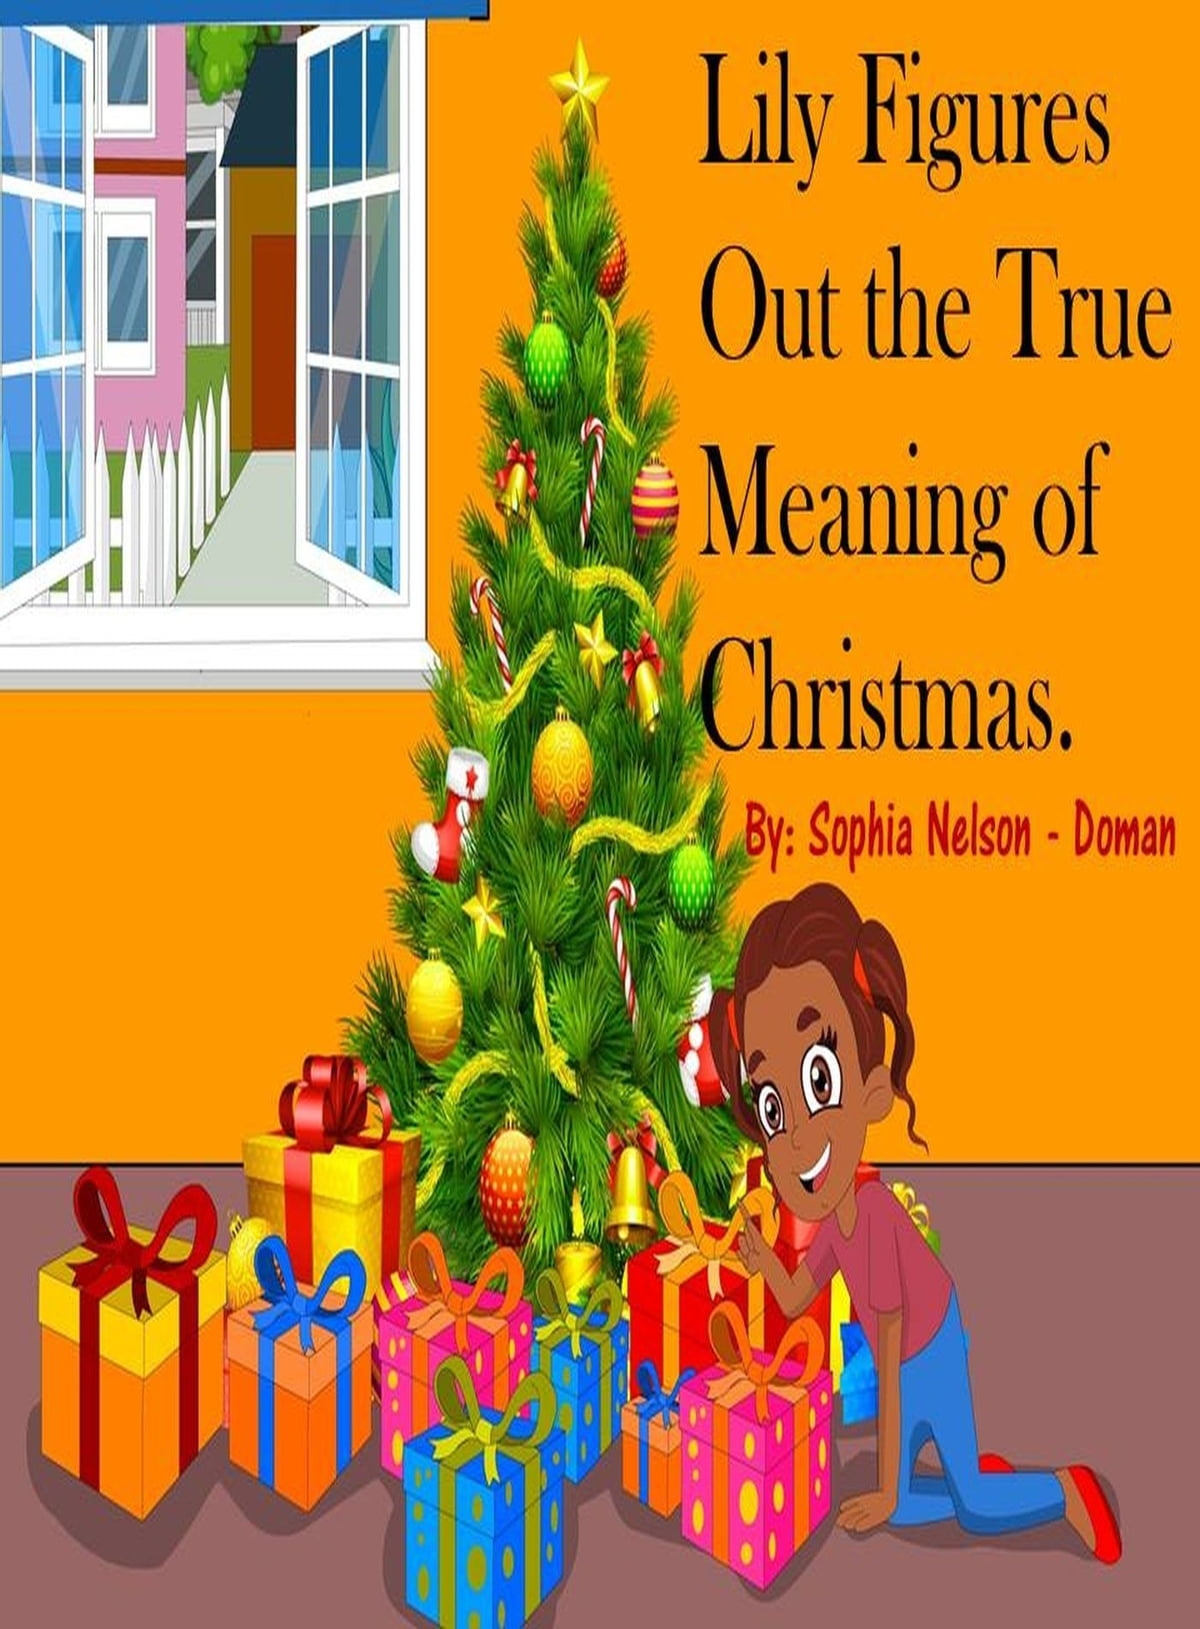 Christmas Meaning.Lily Figures Out The True Meaning Of Christmas Ebook By Sophia Nelson Doman Rakuten Kobo